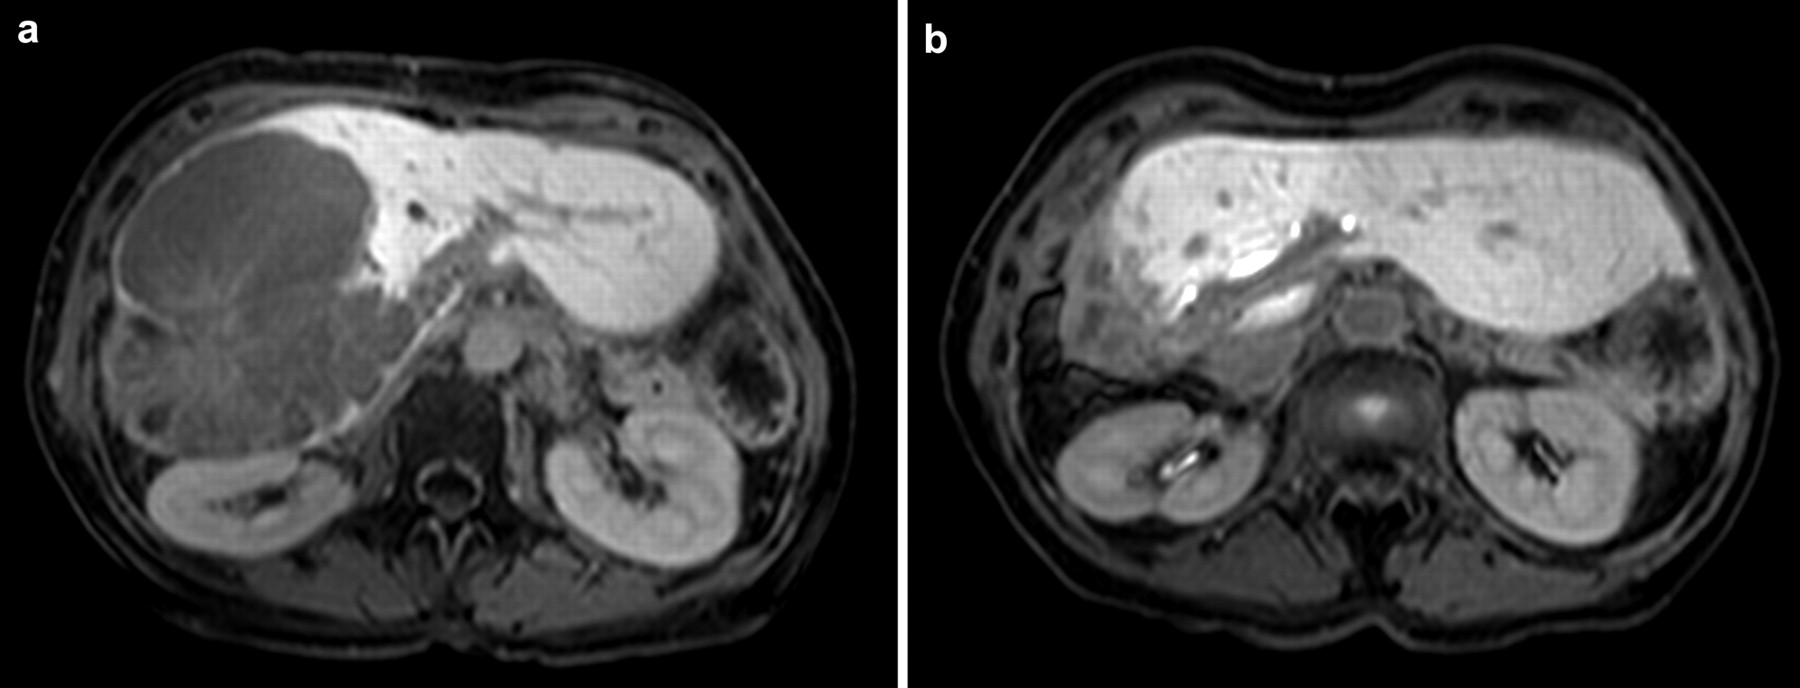 Ct Guided High Dose Rate Brachytherapy Of Metachronous Ovarian Cancer Metastasis To The Liver Initial Experience